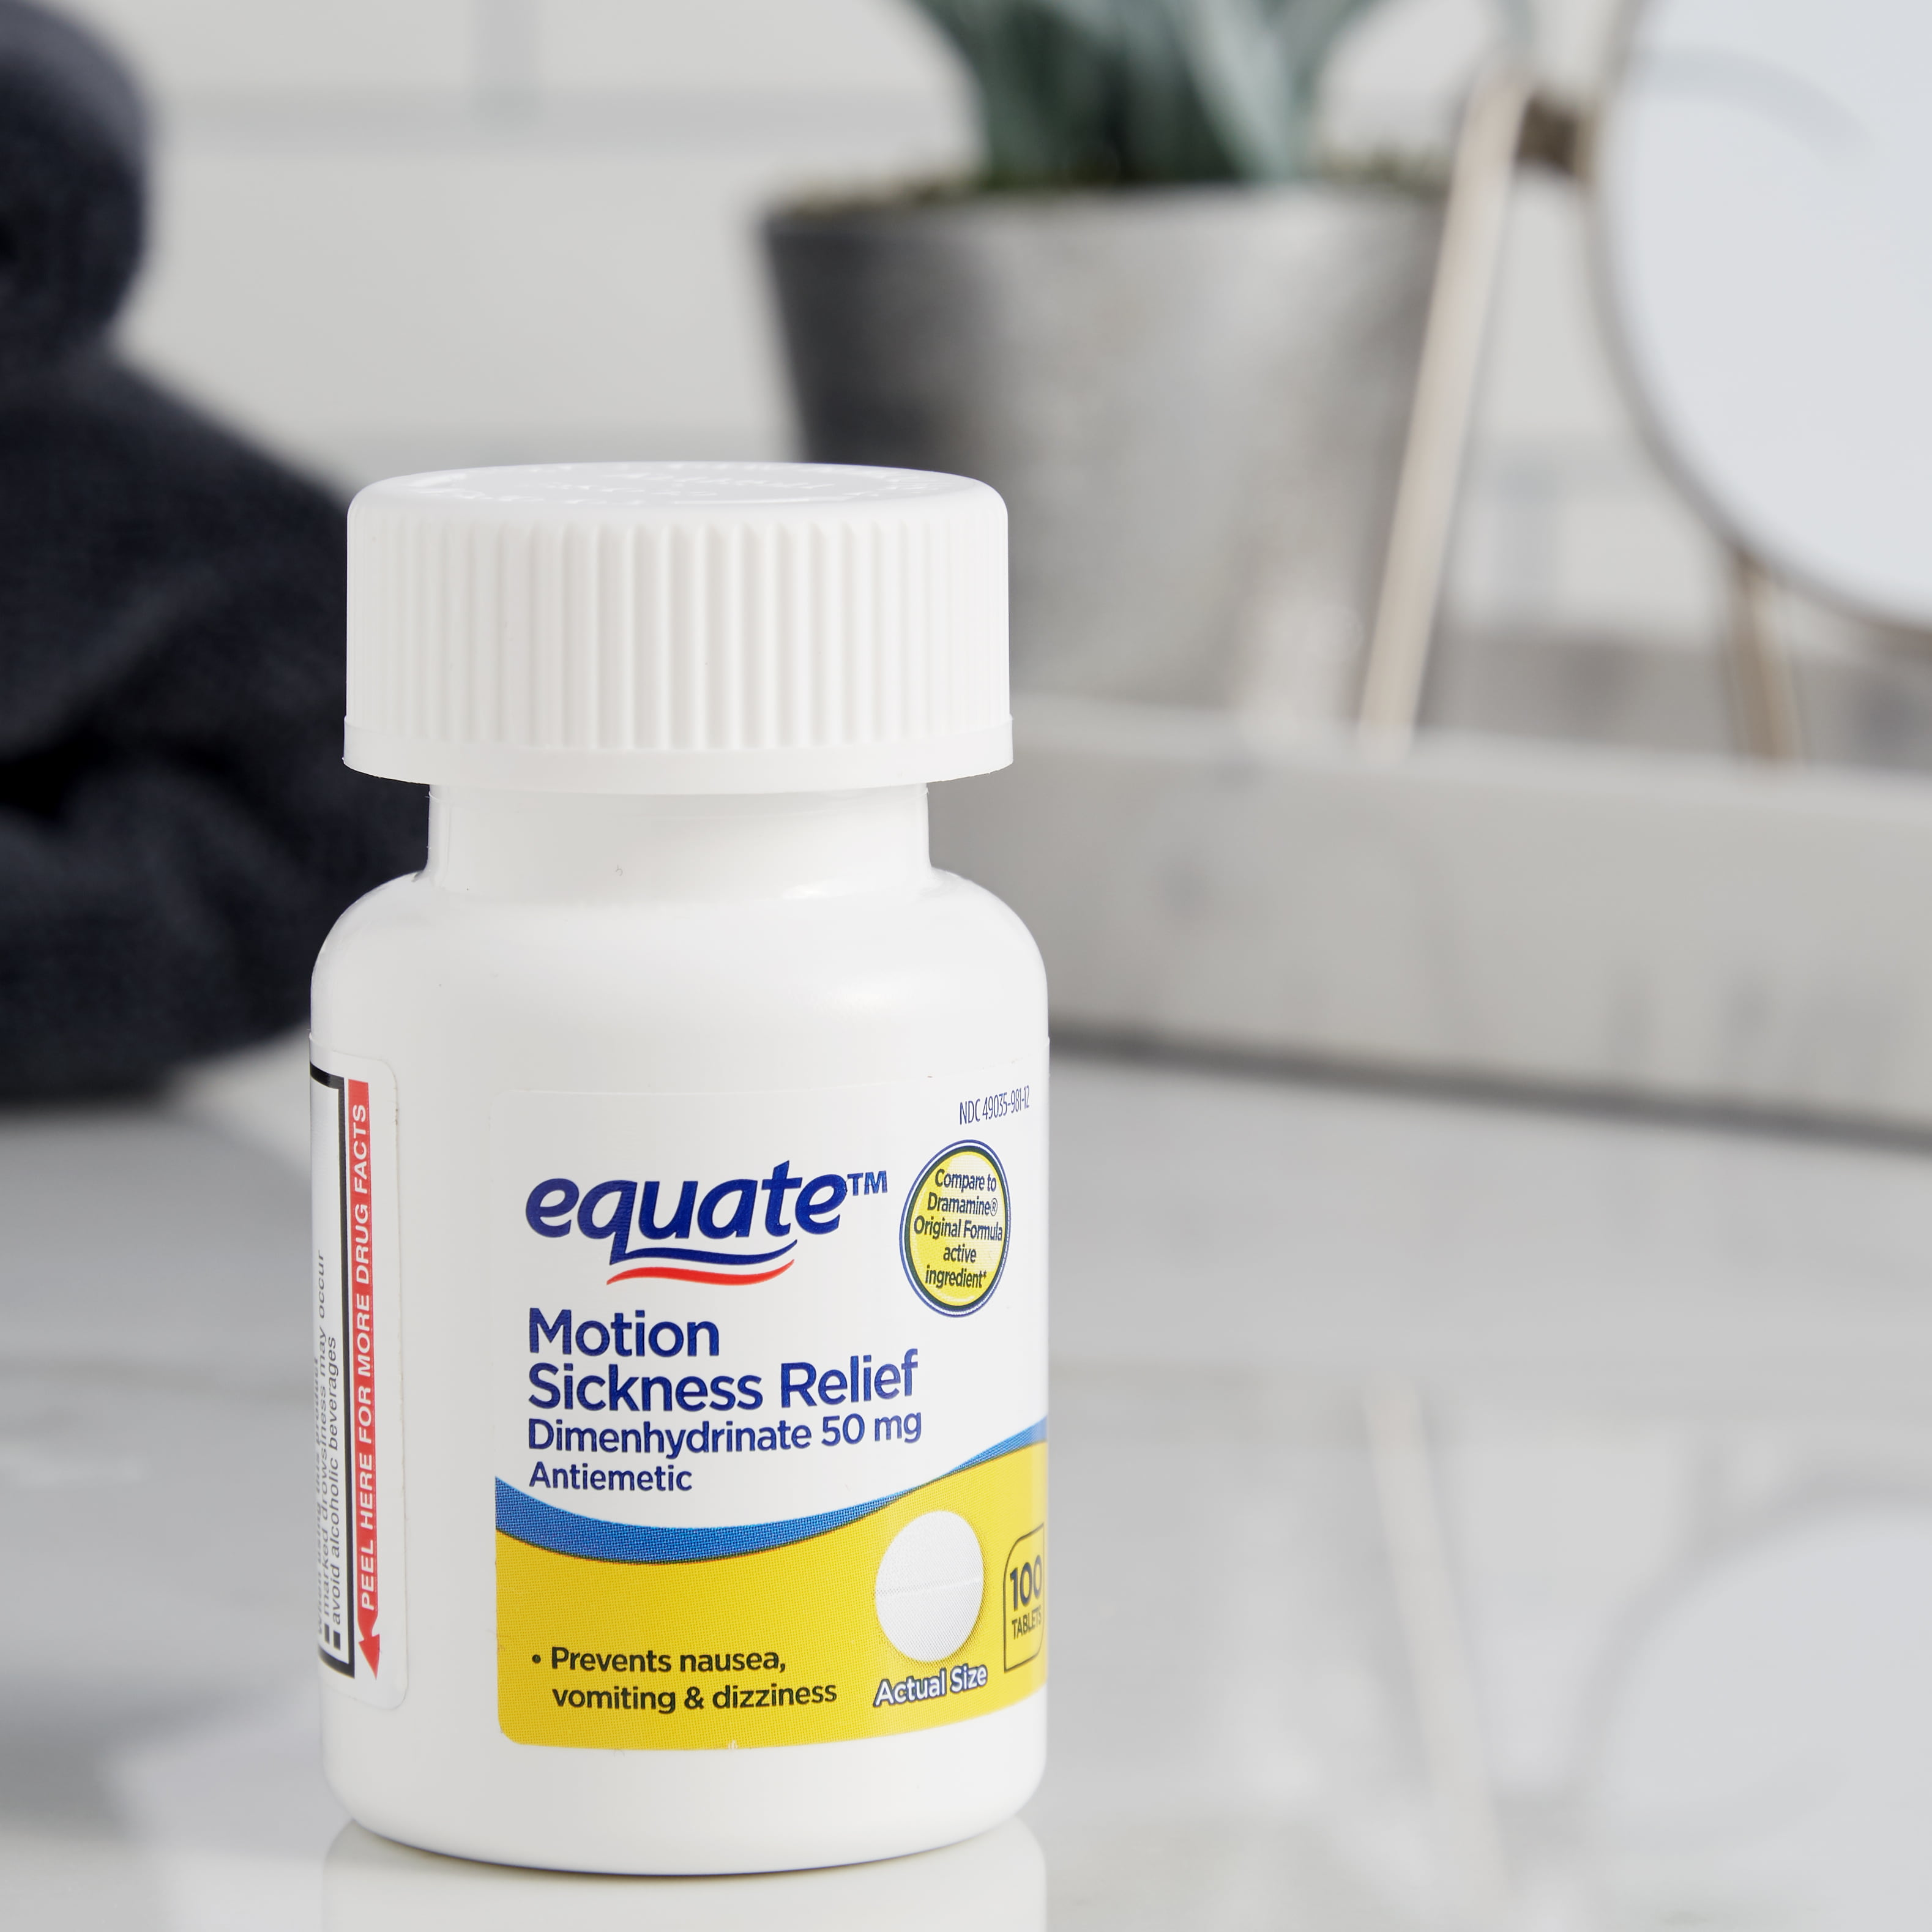 Equate Fast Acting Motion Sickness Relief Dimenhydrinate